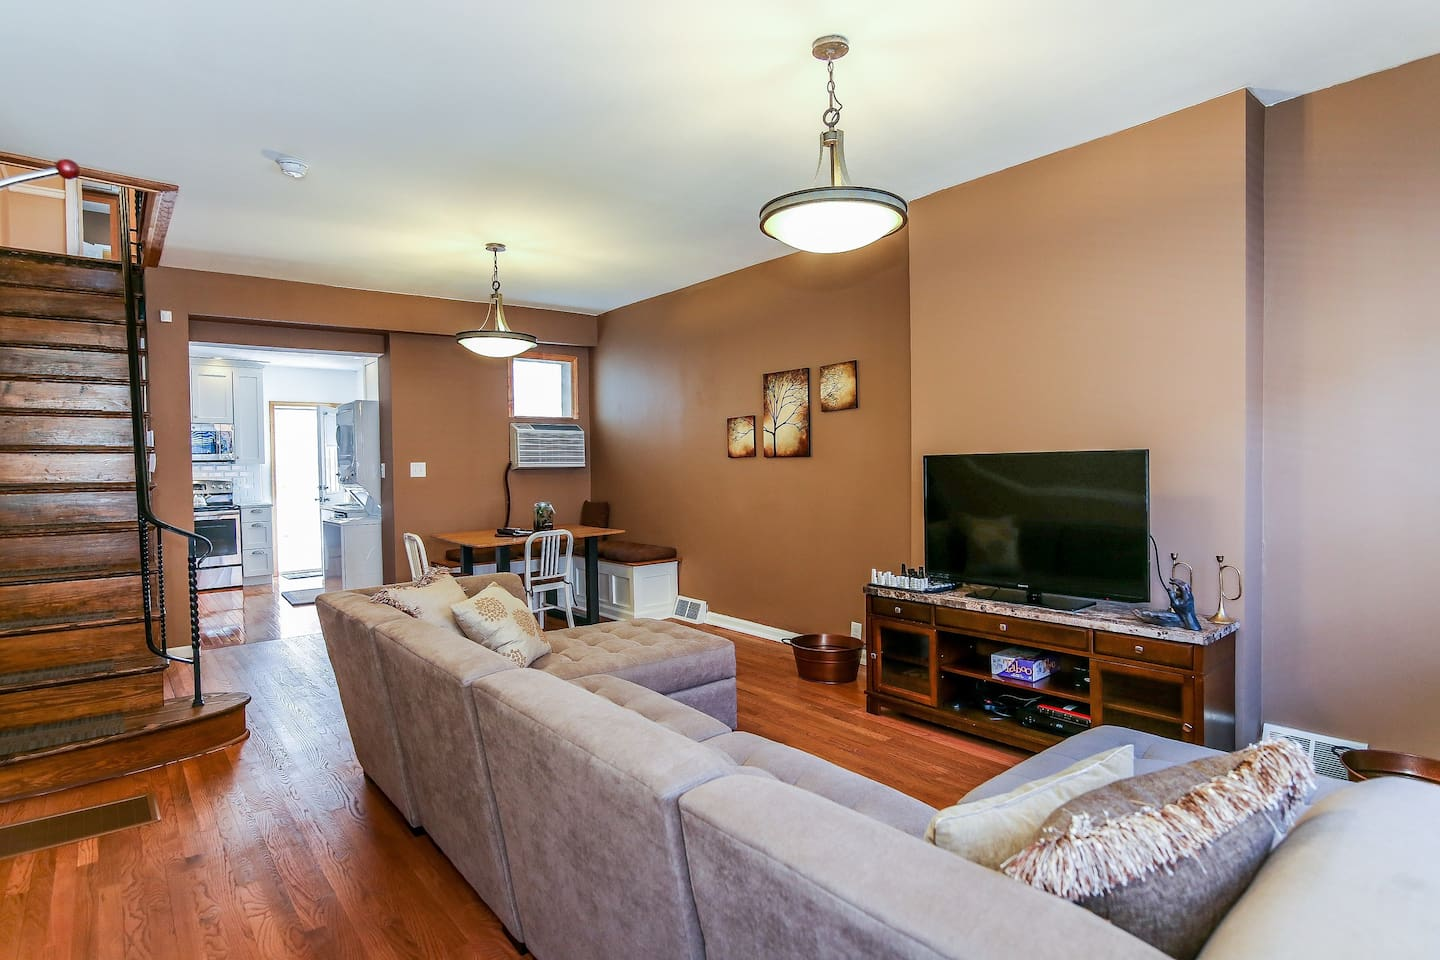 This charming row home was renovated recently and includes beautiful hardwood floors, California closets, premium cable and Wi-Fi, towels and linens, and all the comforts of your own home.